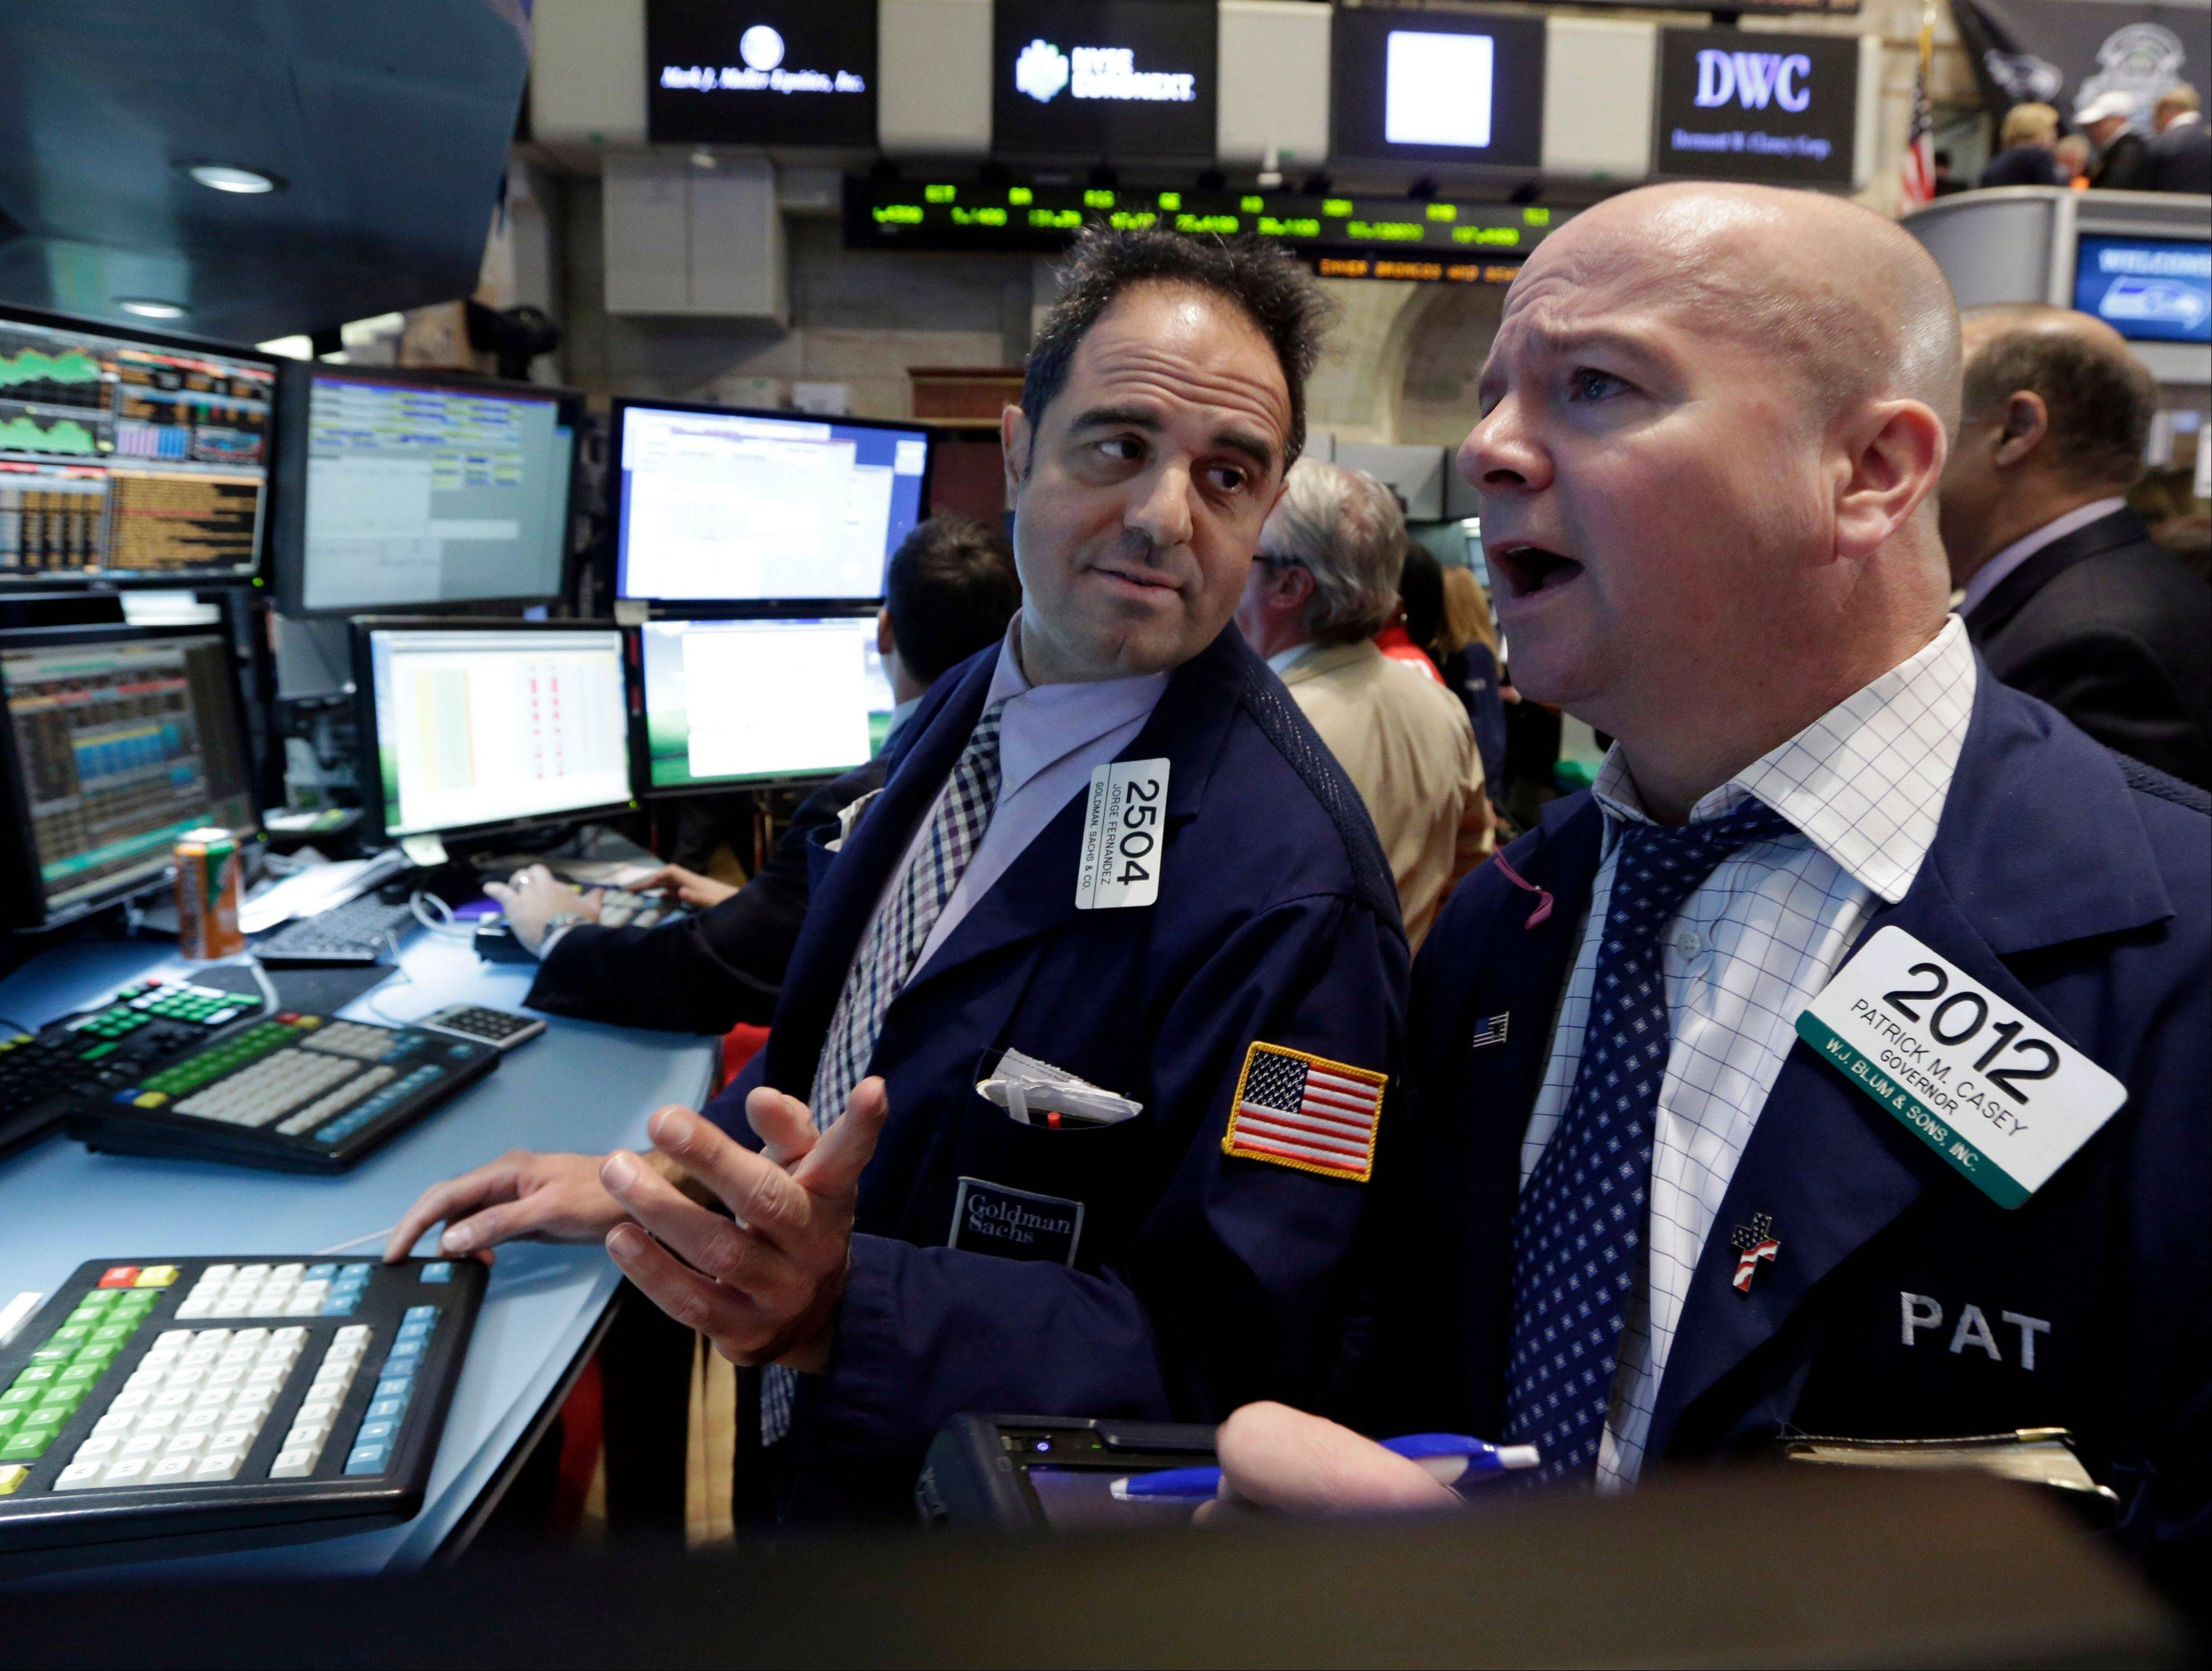 Stocks fell sharply Friday, as investors fretted over disappointing earnings from companies like Amazon.com and more trouble in overseas markets.